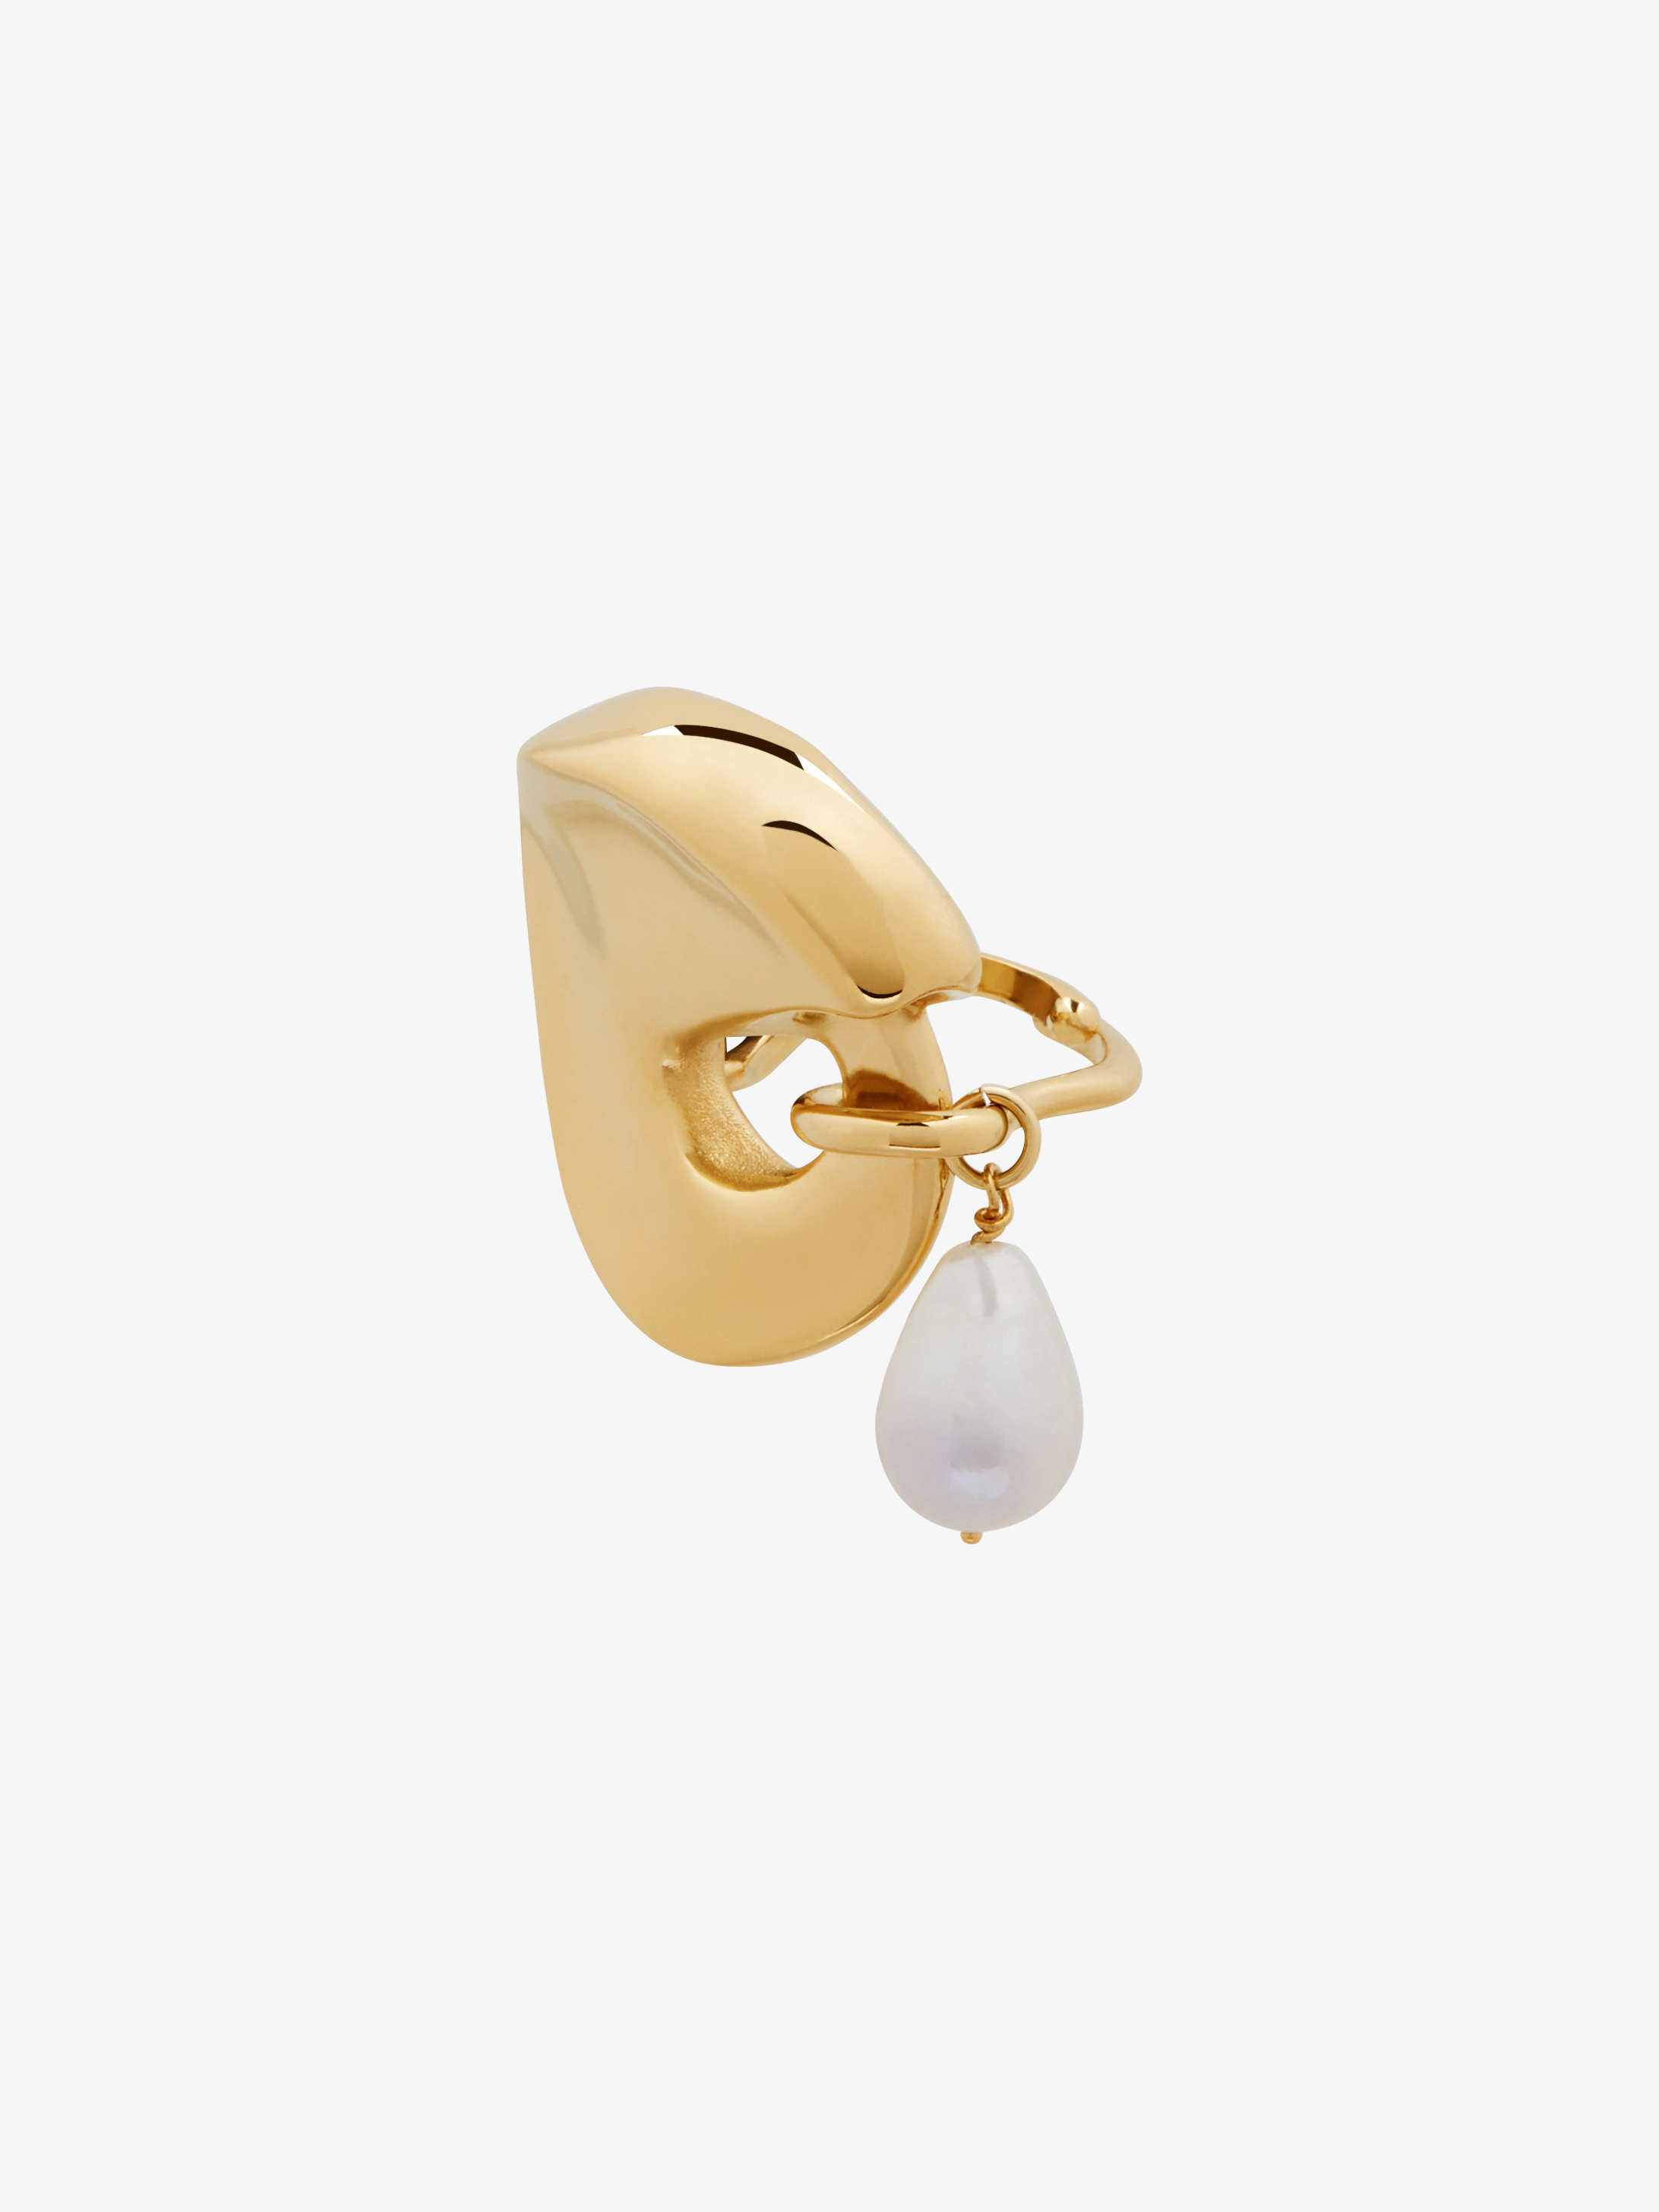 Cloud adjustable ring with pearl